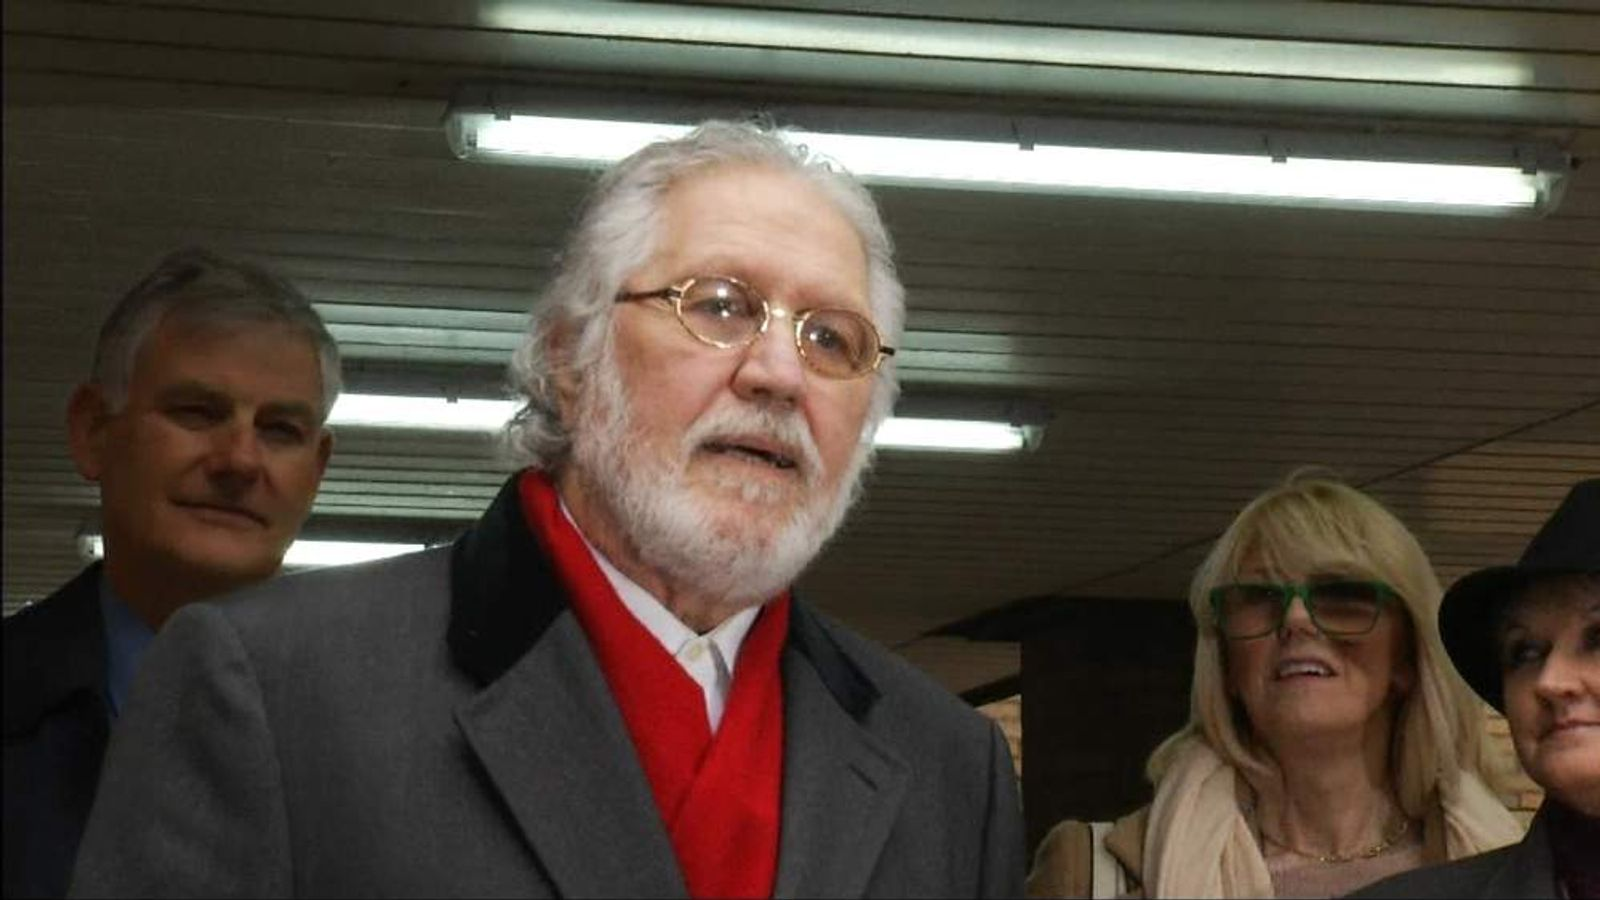 Former Radio 1 DJ Dave Lee Travis